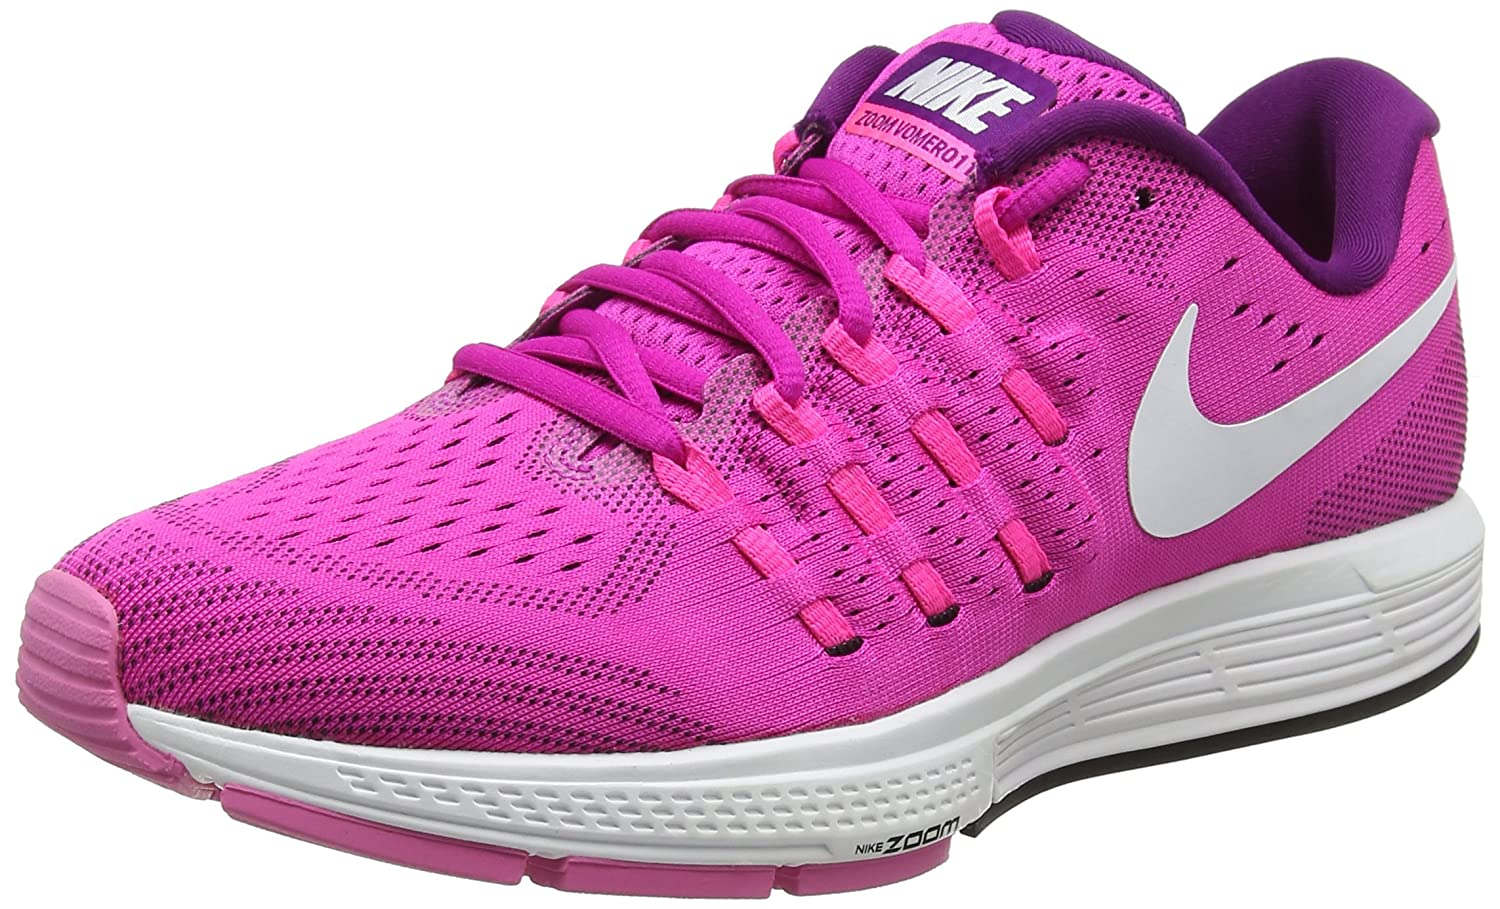 NIKE Women's Air Zoom Vomero 11 Running Shoe B01M4HBQ9O 8 B(M) US|Fire Pink/White-bright Grape-black